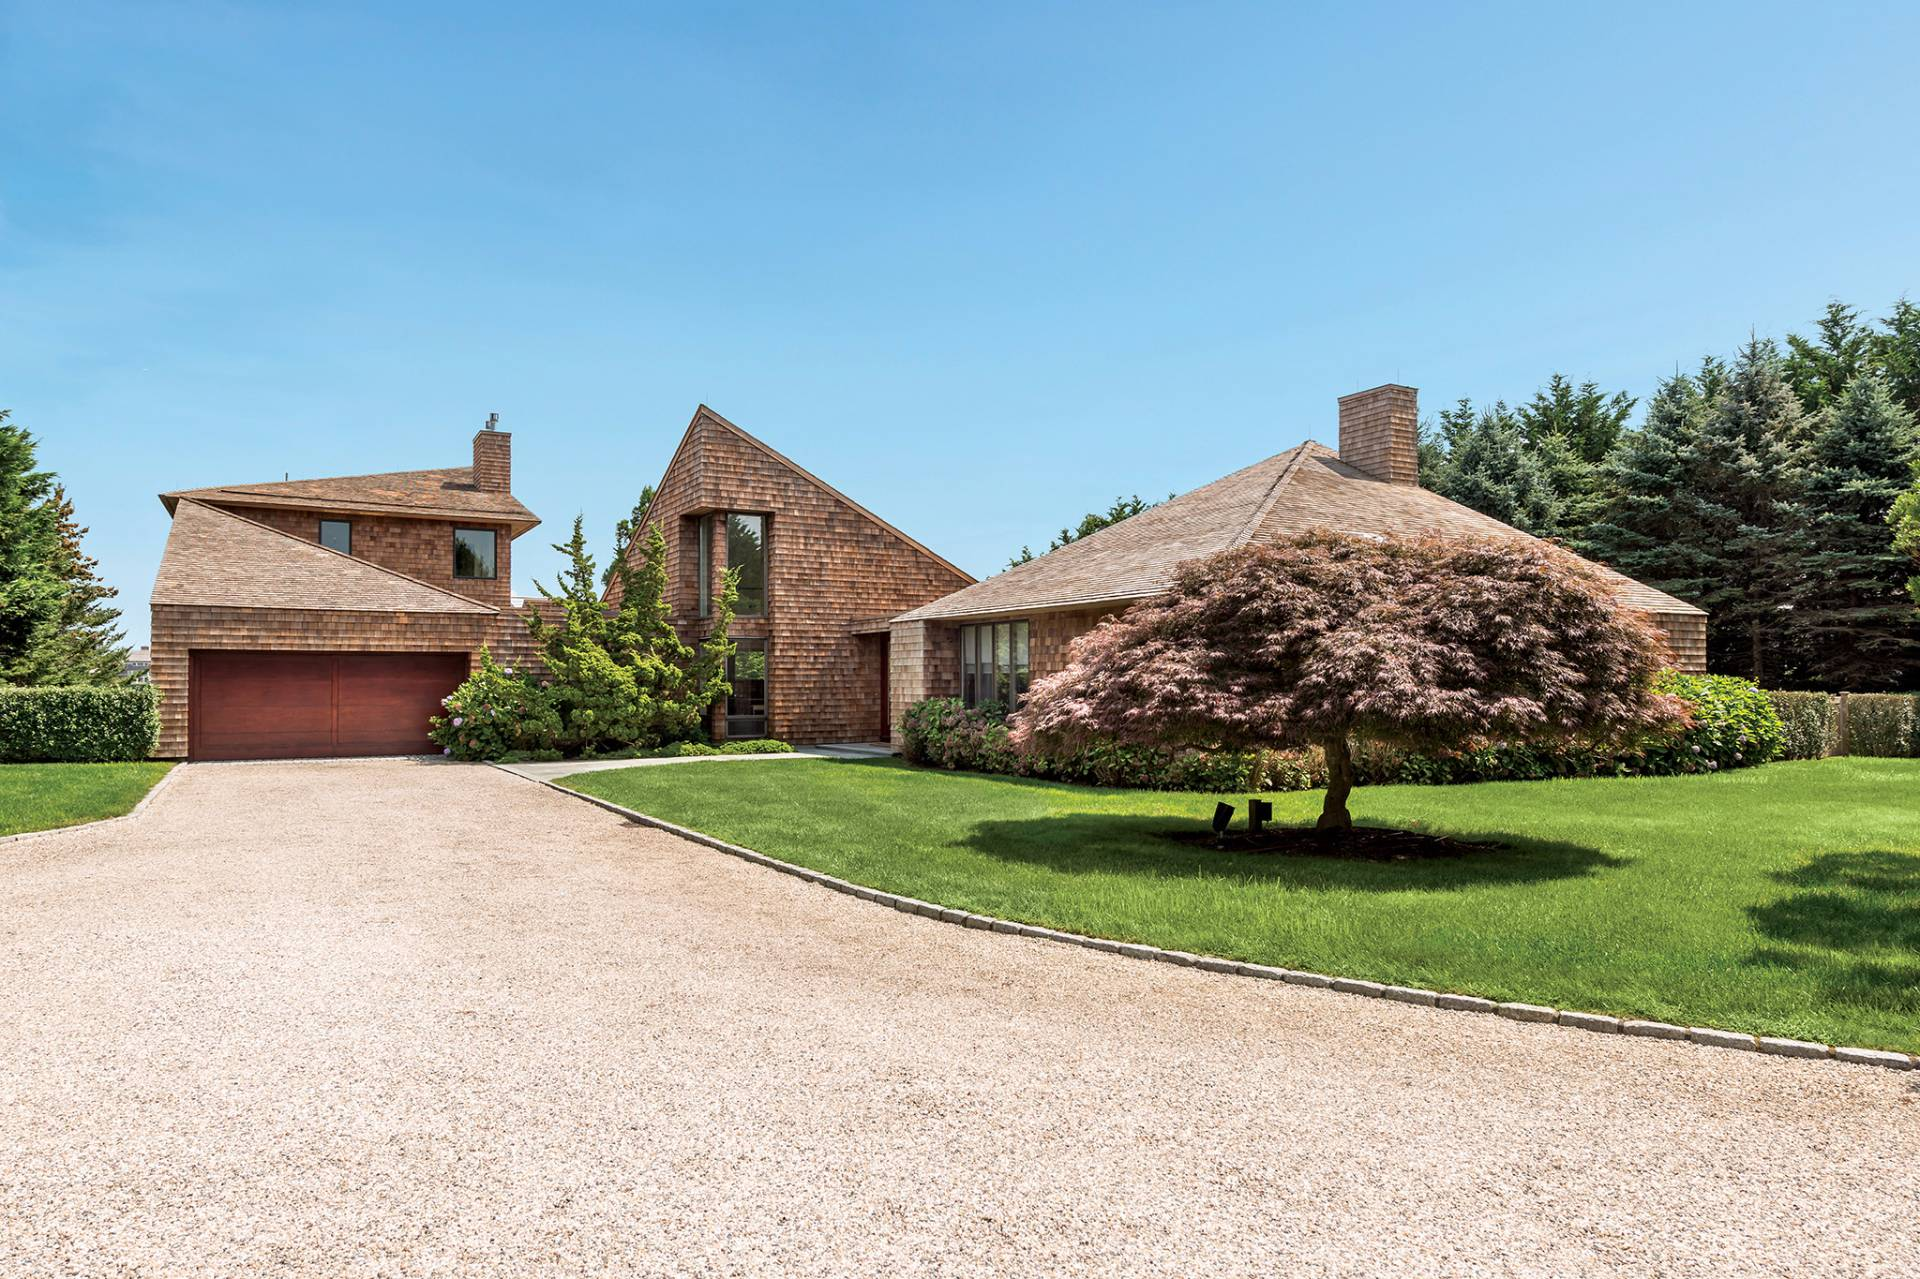 Single Family Home for Sale at Architectural Gem On Sagaponack Reserve 497 Parsonage Lane, Sagaponack, New York